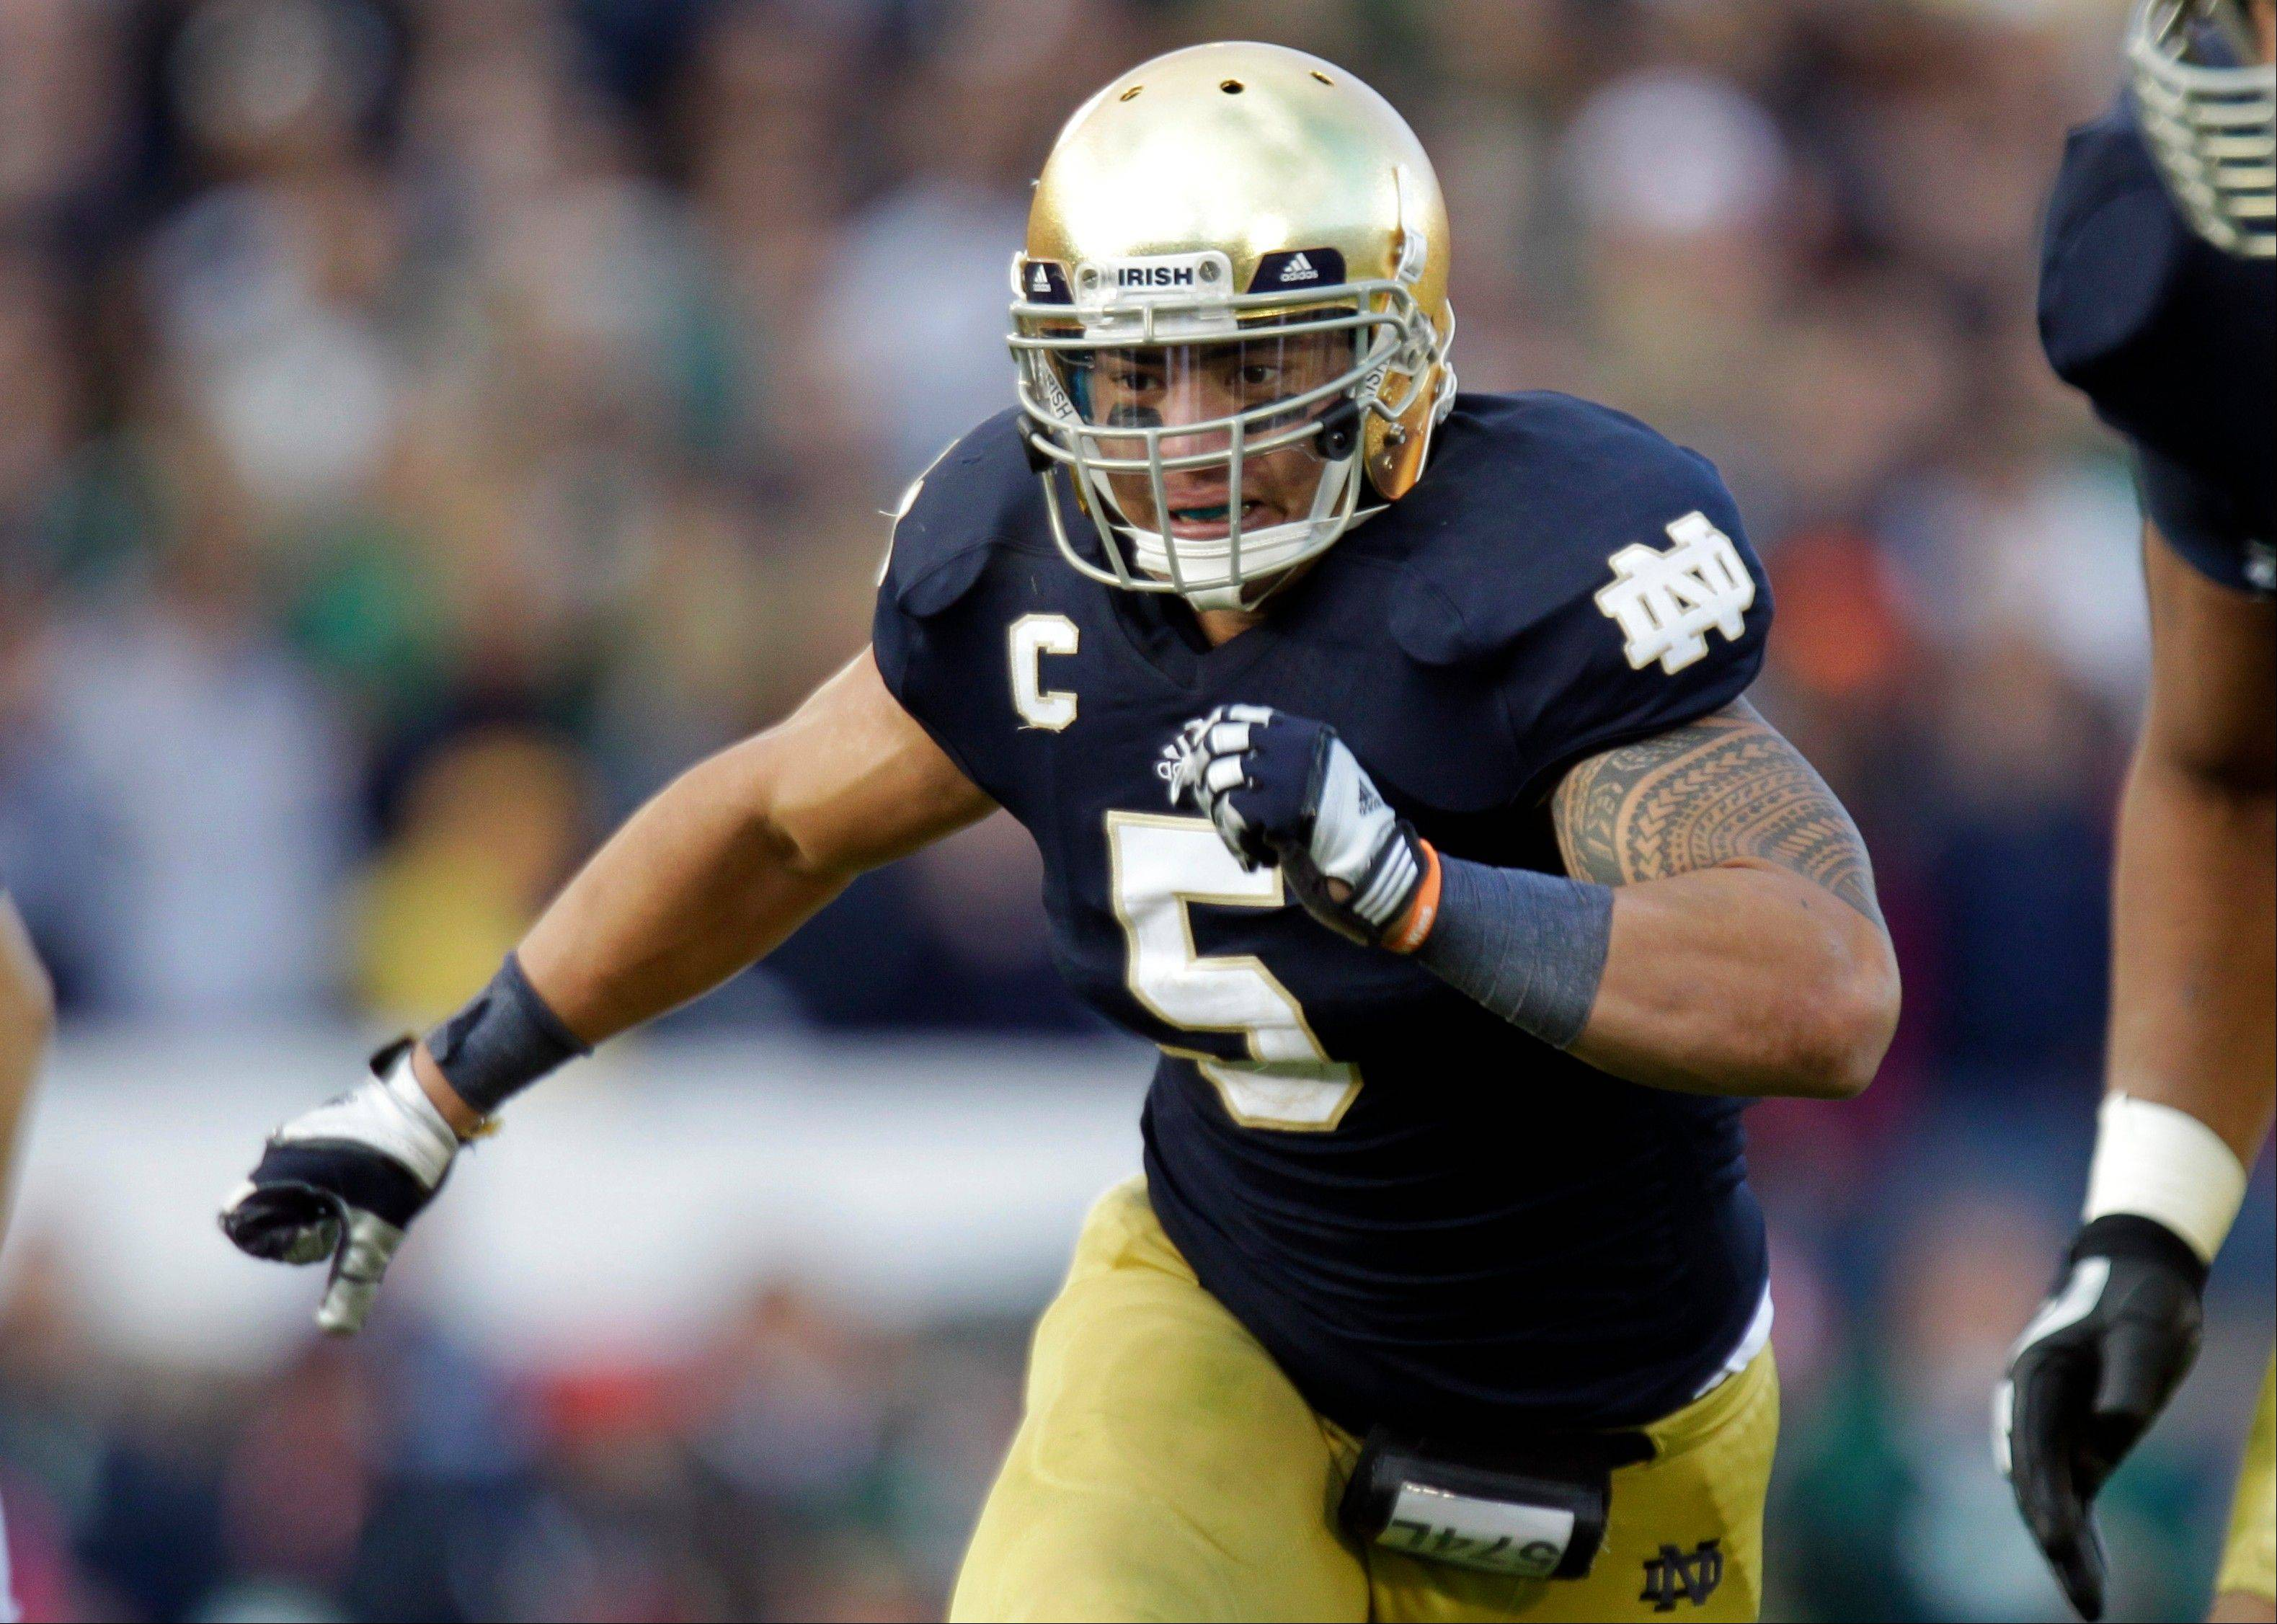 Notre Dame linebacker Manti Te'o plays against BYU in South Bend, Ind. Te'o is a finalist for the Heisman Trophy.